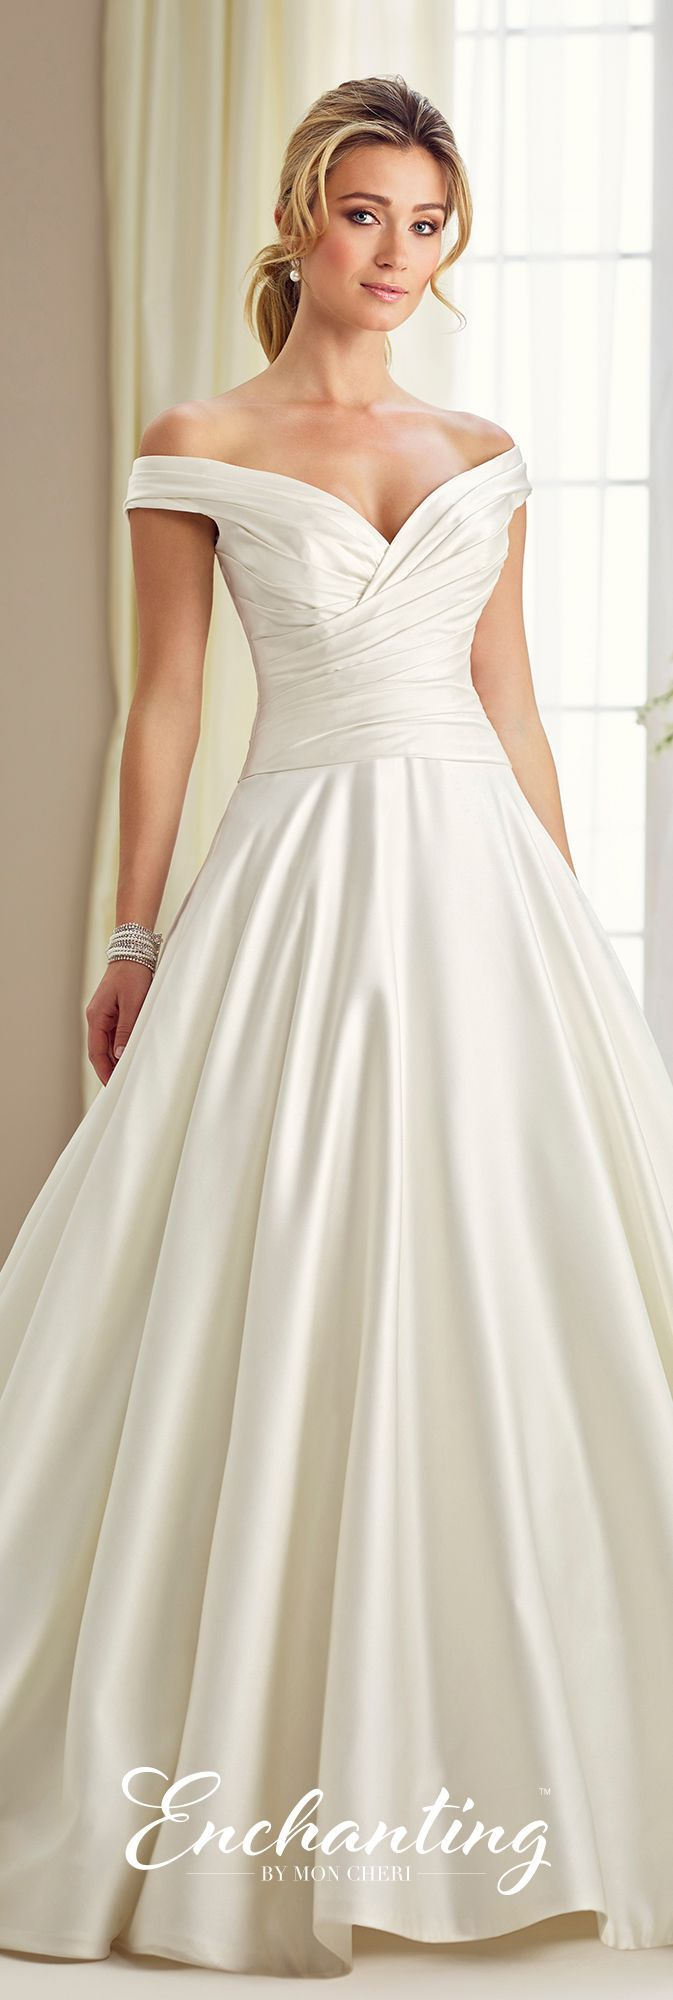 Best 25 satin wedding gowns ideas on pinterest wedding dresses 217119 satin wedding dressesball junglespirit Image collections